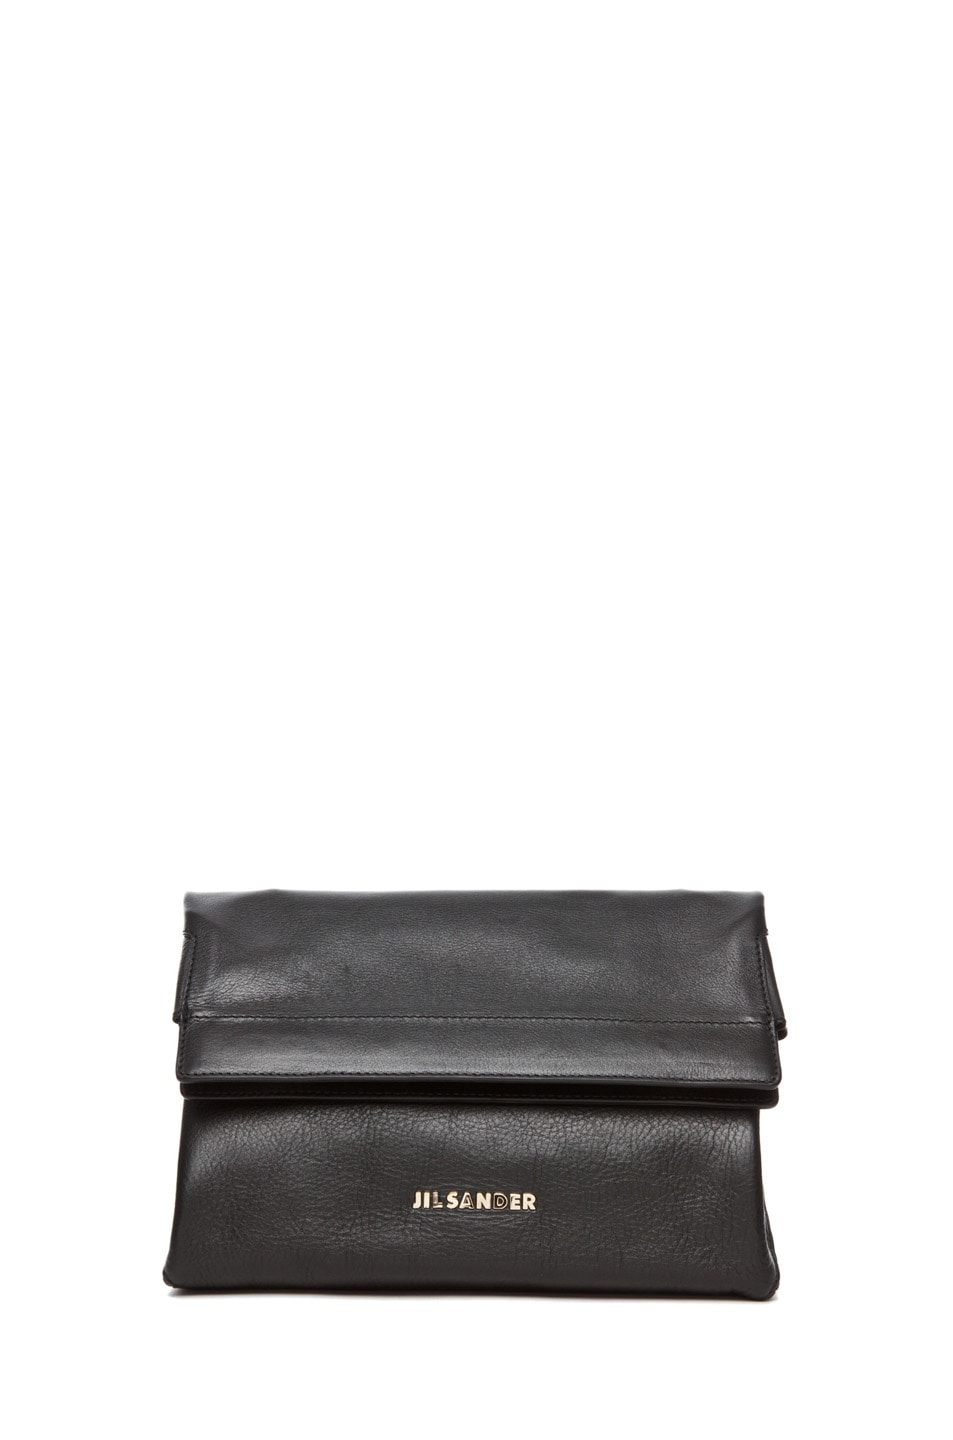 Image 2 of Jil Sander Milton Bag in Black